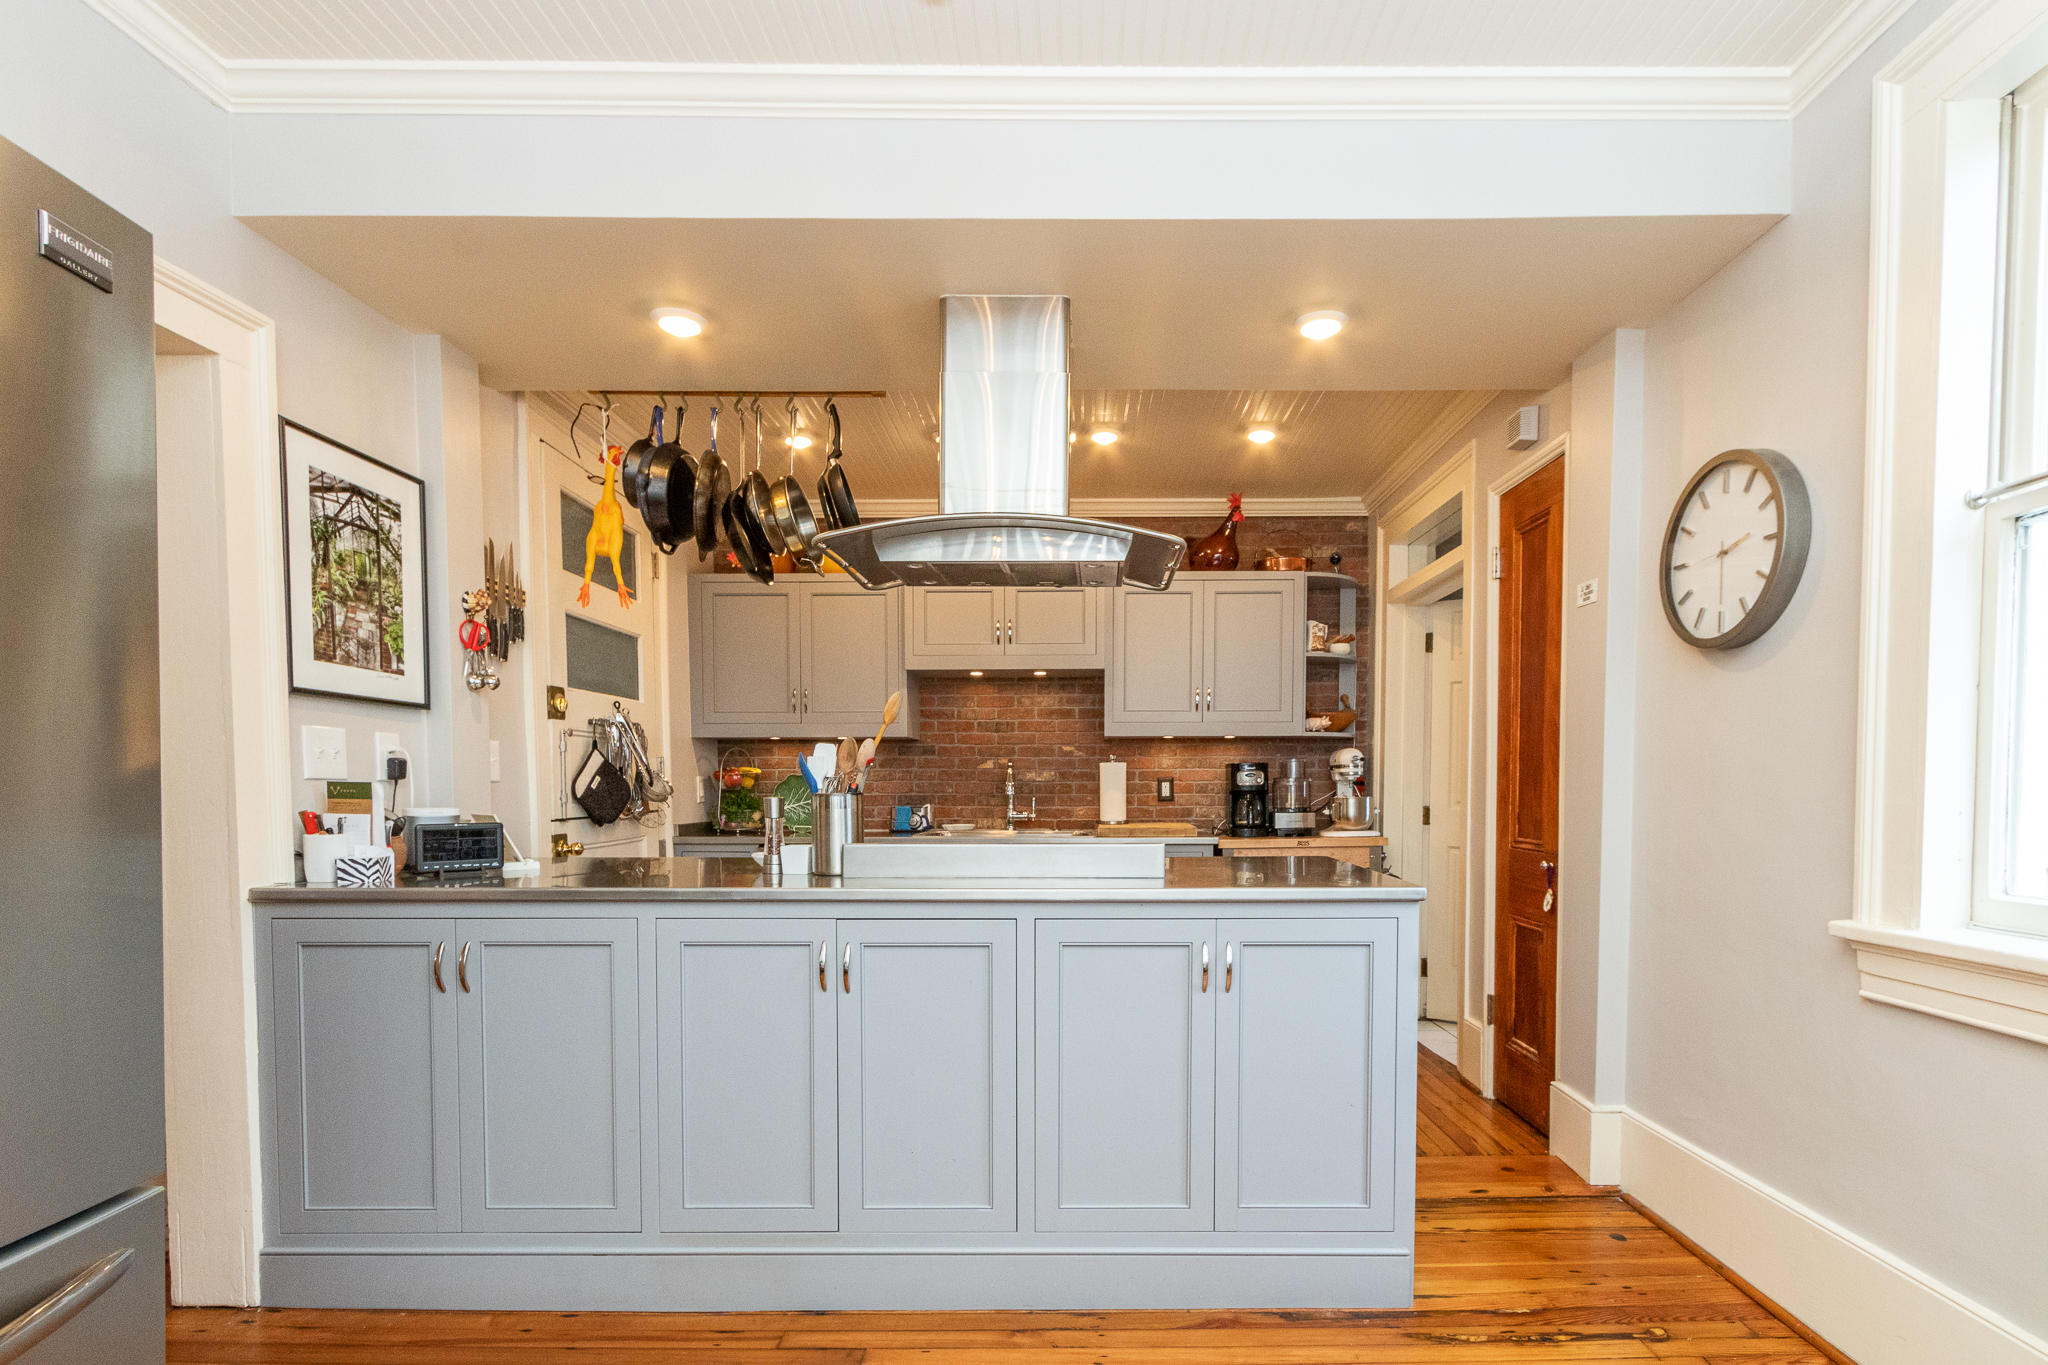 South of Broad Homes For Sale - 164 Tradd, Charleston, SC - 30